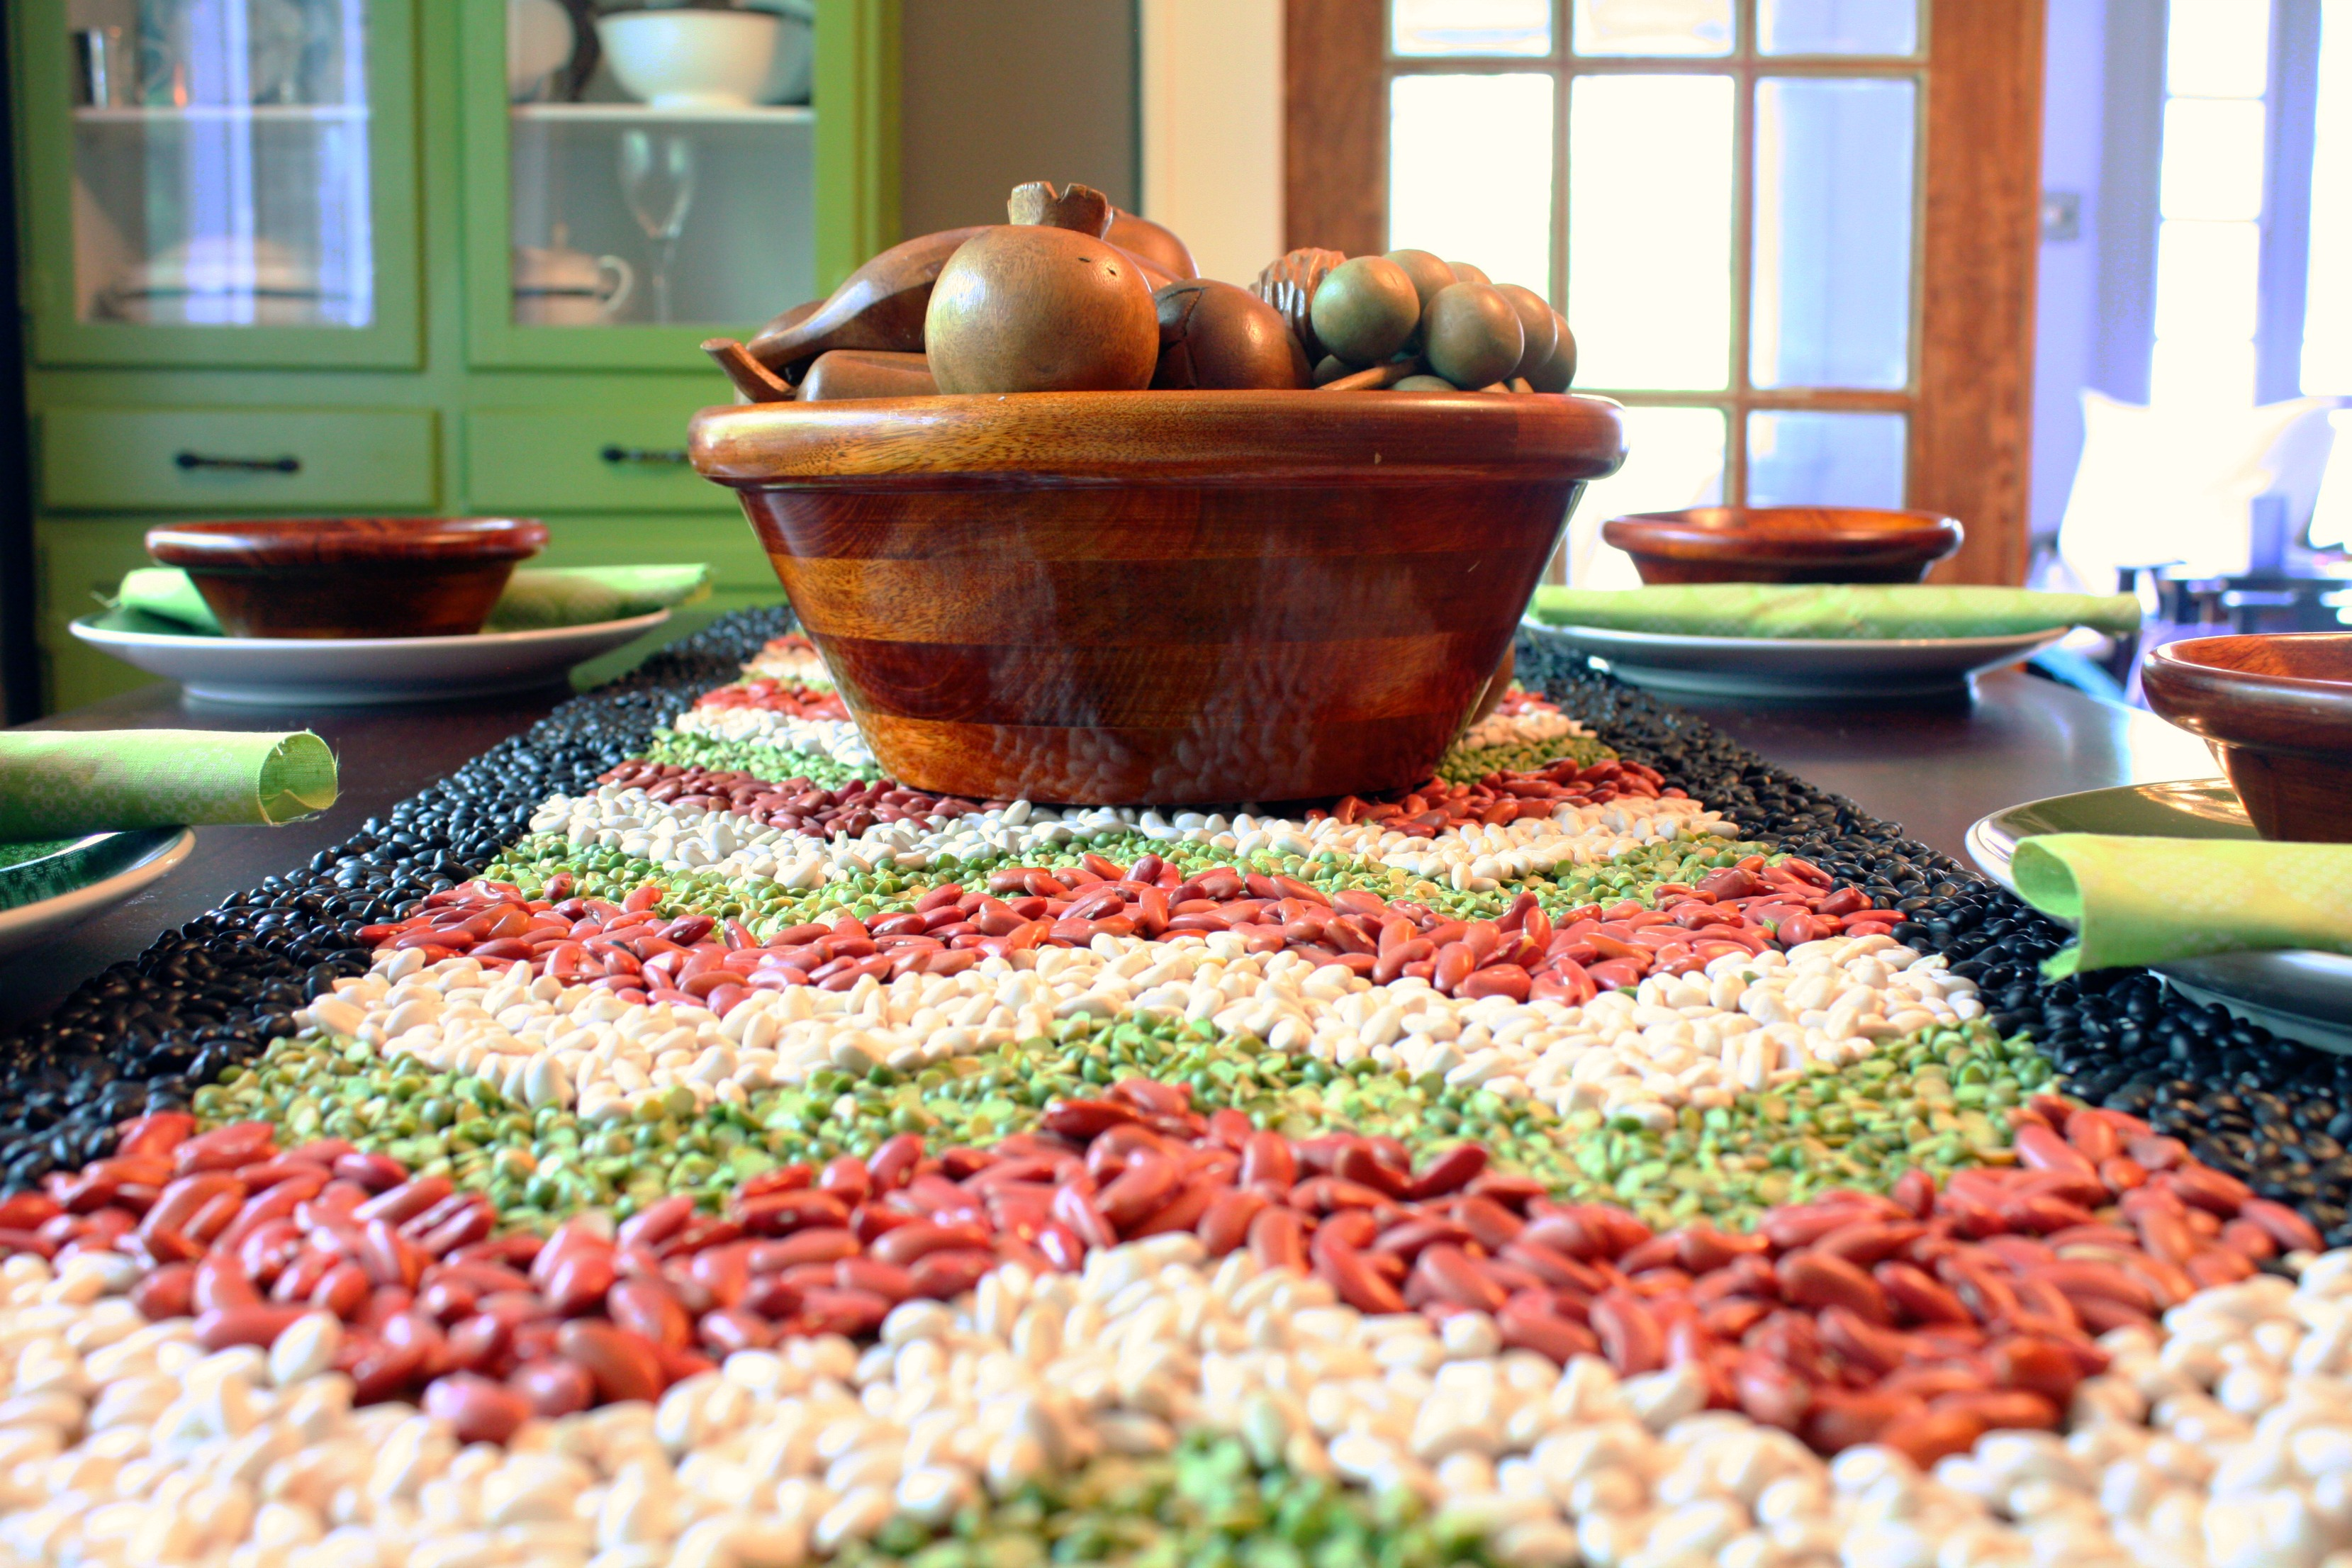 Autumn Bean Textured Table Runner